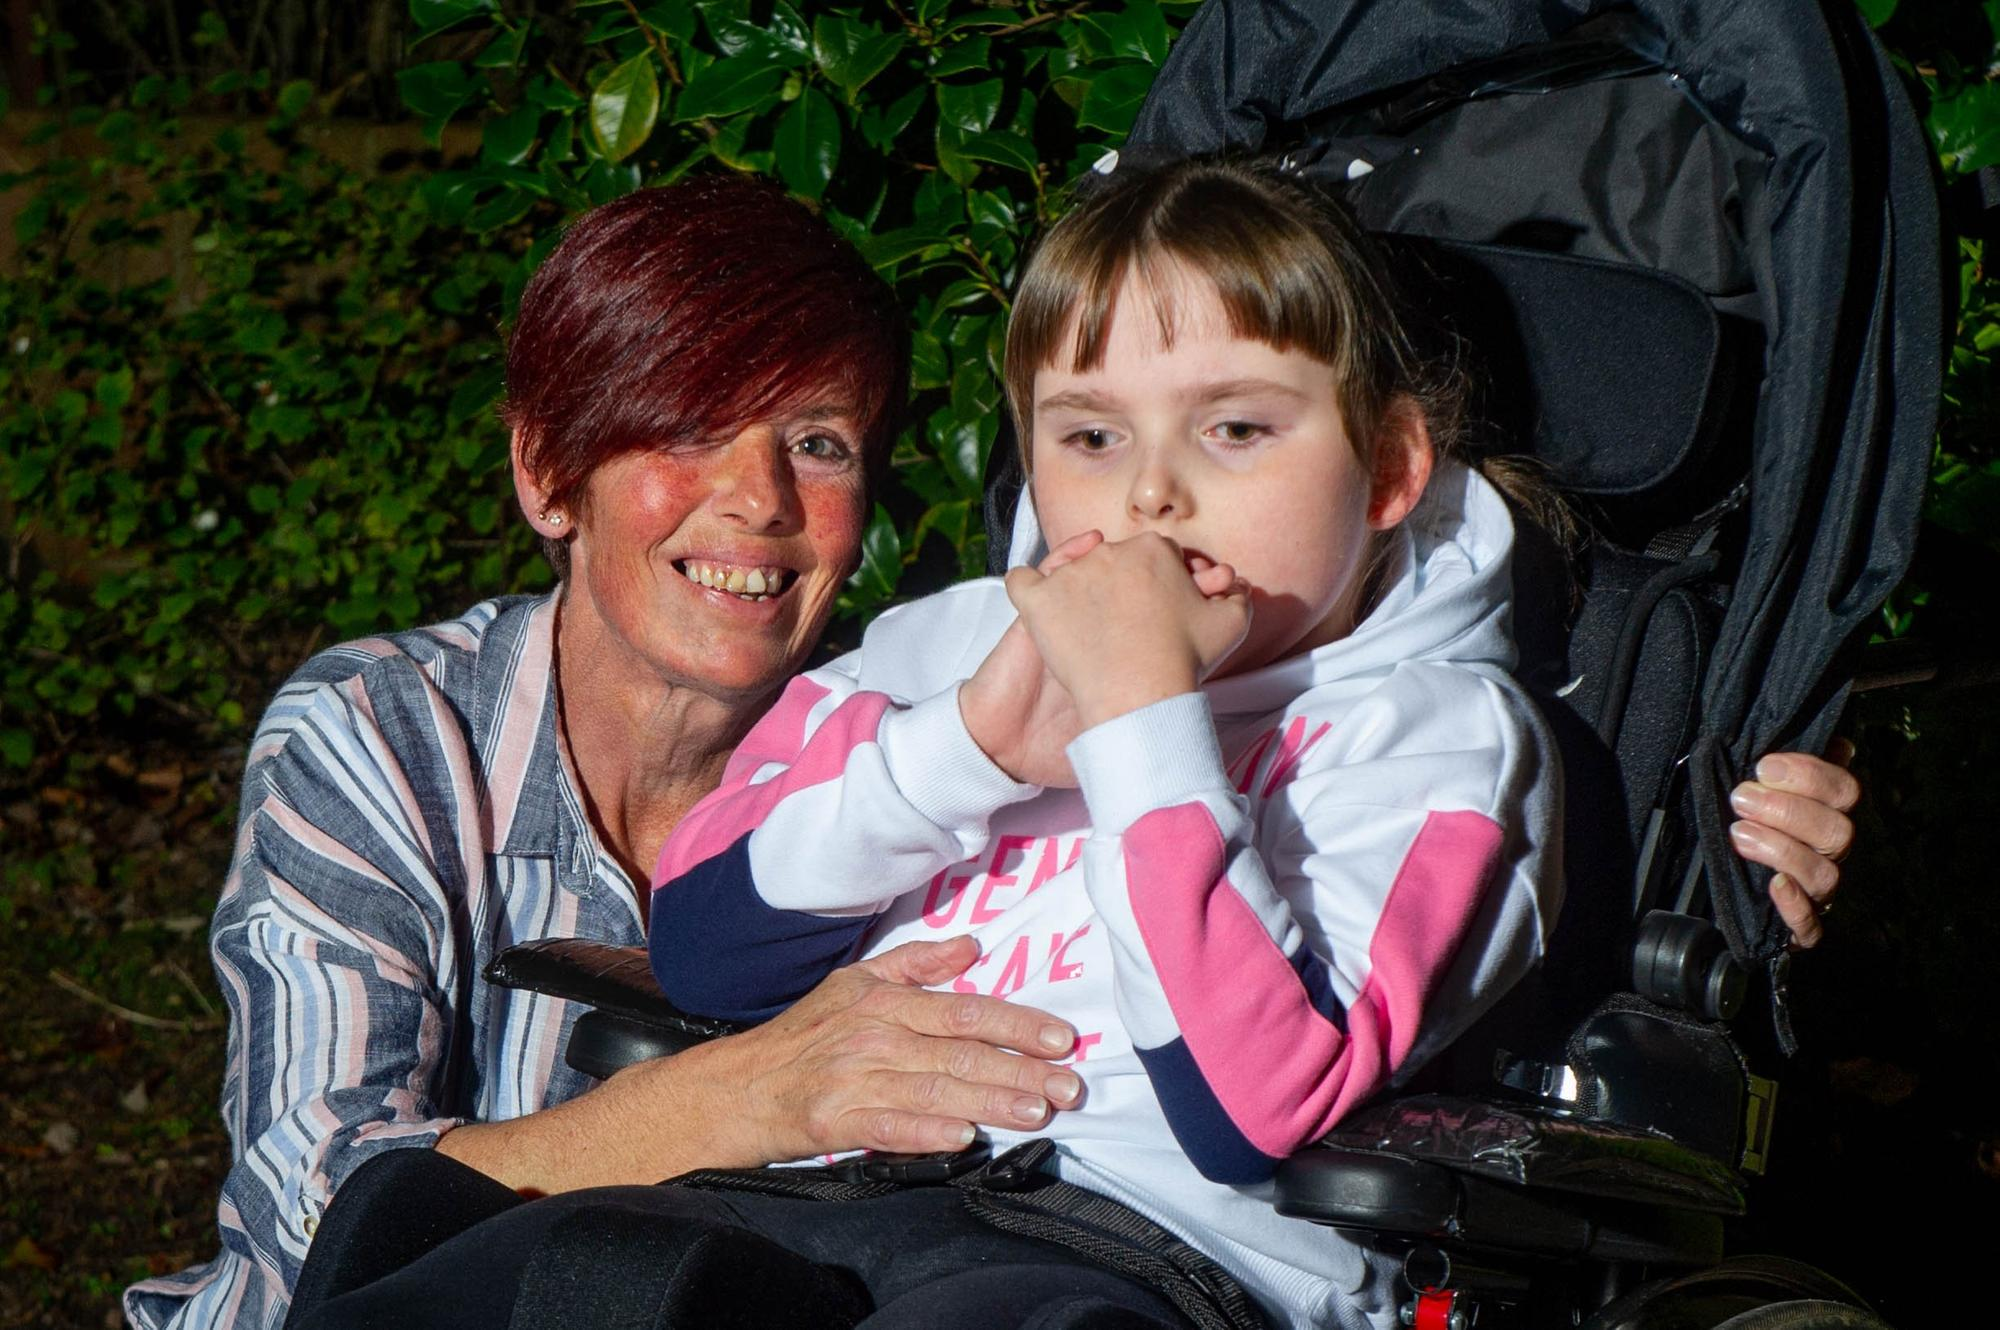 Appeal launched to help 'exceptional' seven-year-old girl with cerebral palsy learn to walk